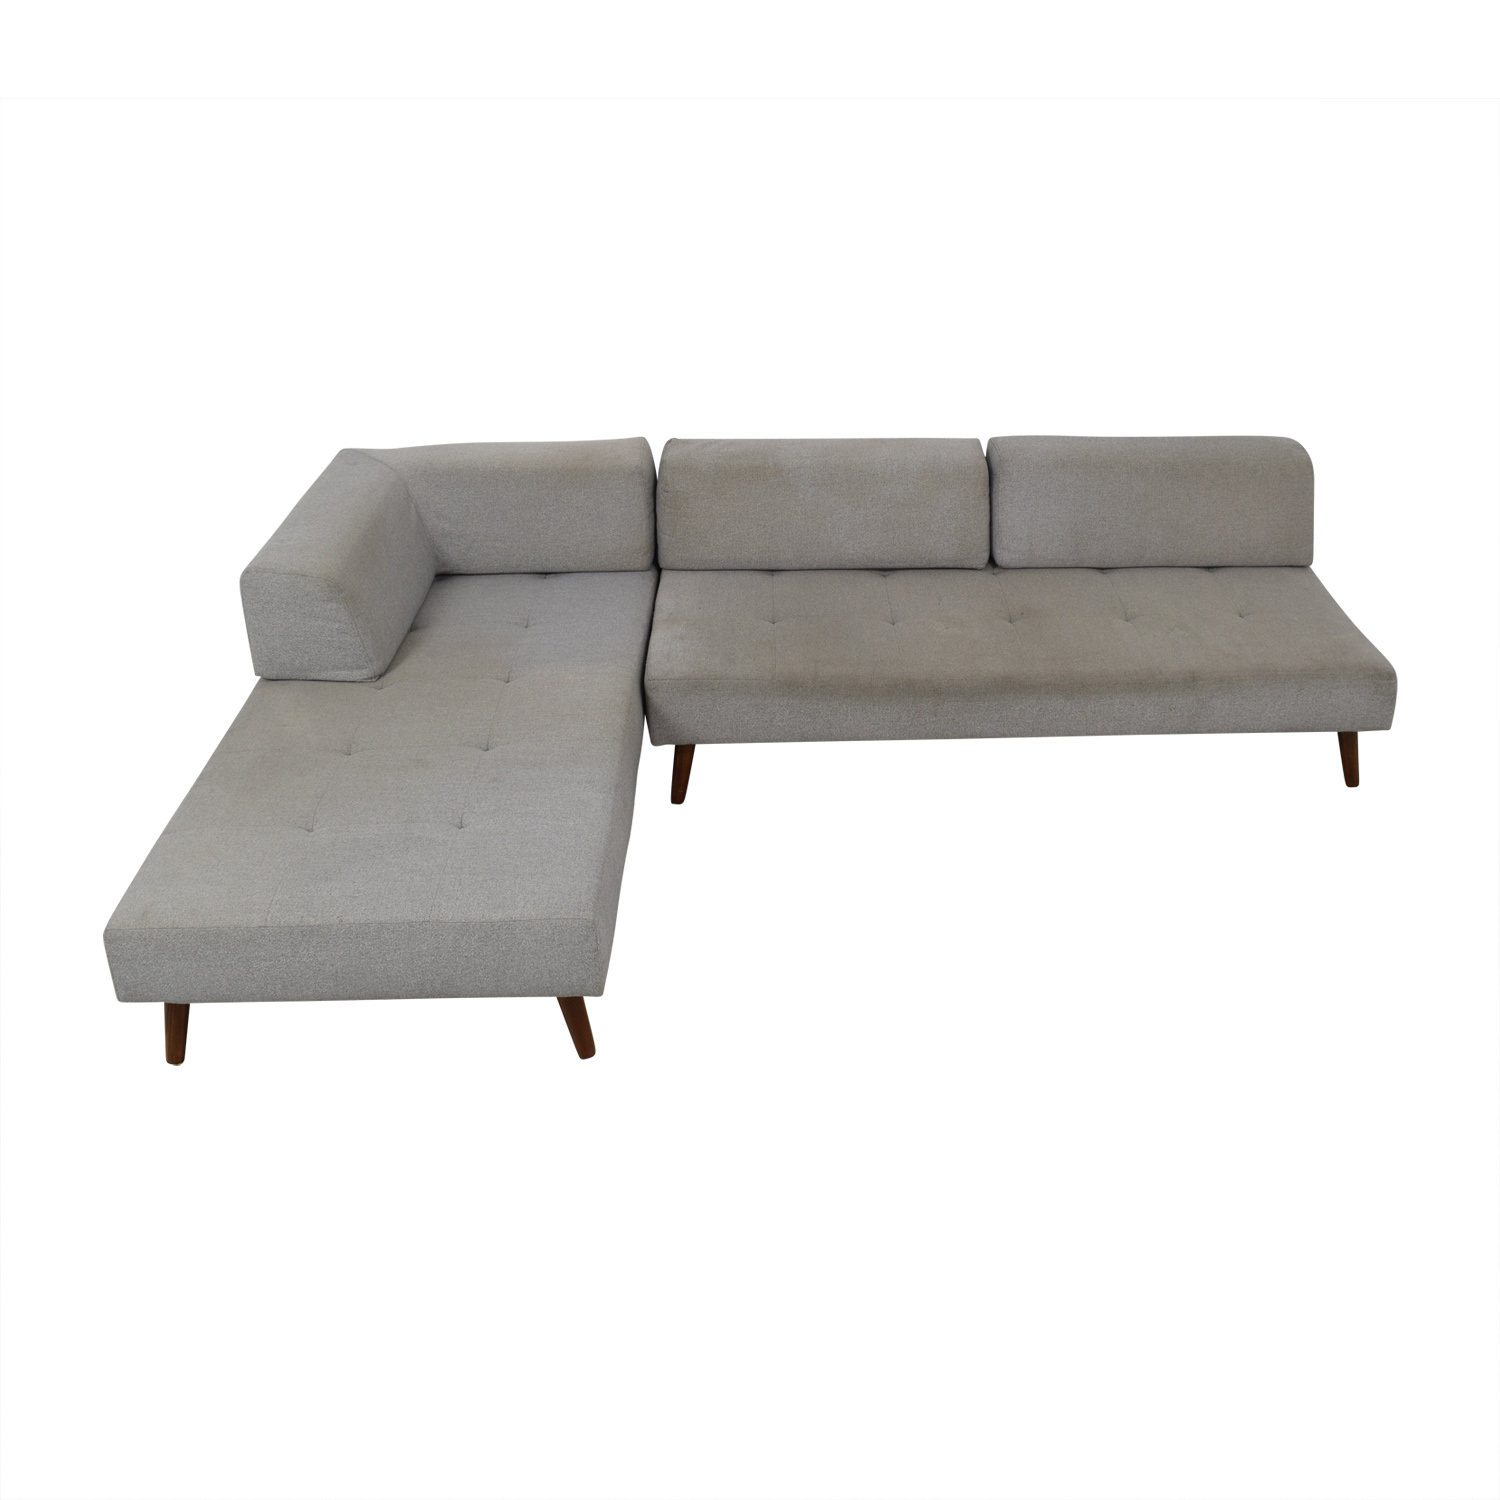 shop West Elm West Elm Sectional Couch online